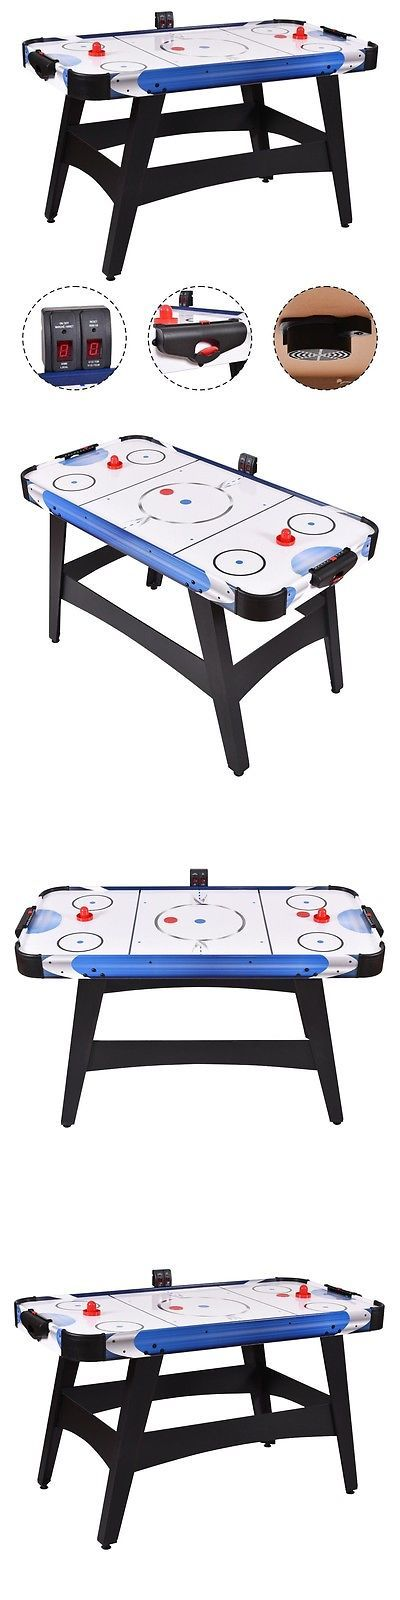 Air Hockey 36275: 54 Air Powered Hockey Table Indoor Sports Game Electronic Scoring For Kids Hot BUY IT NOW ONLY: $109.89